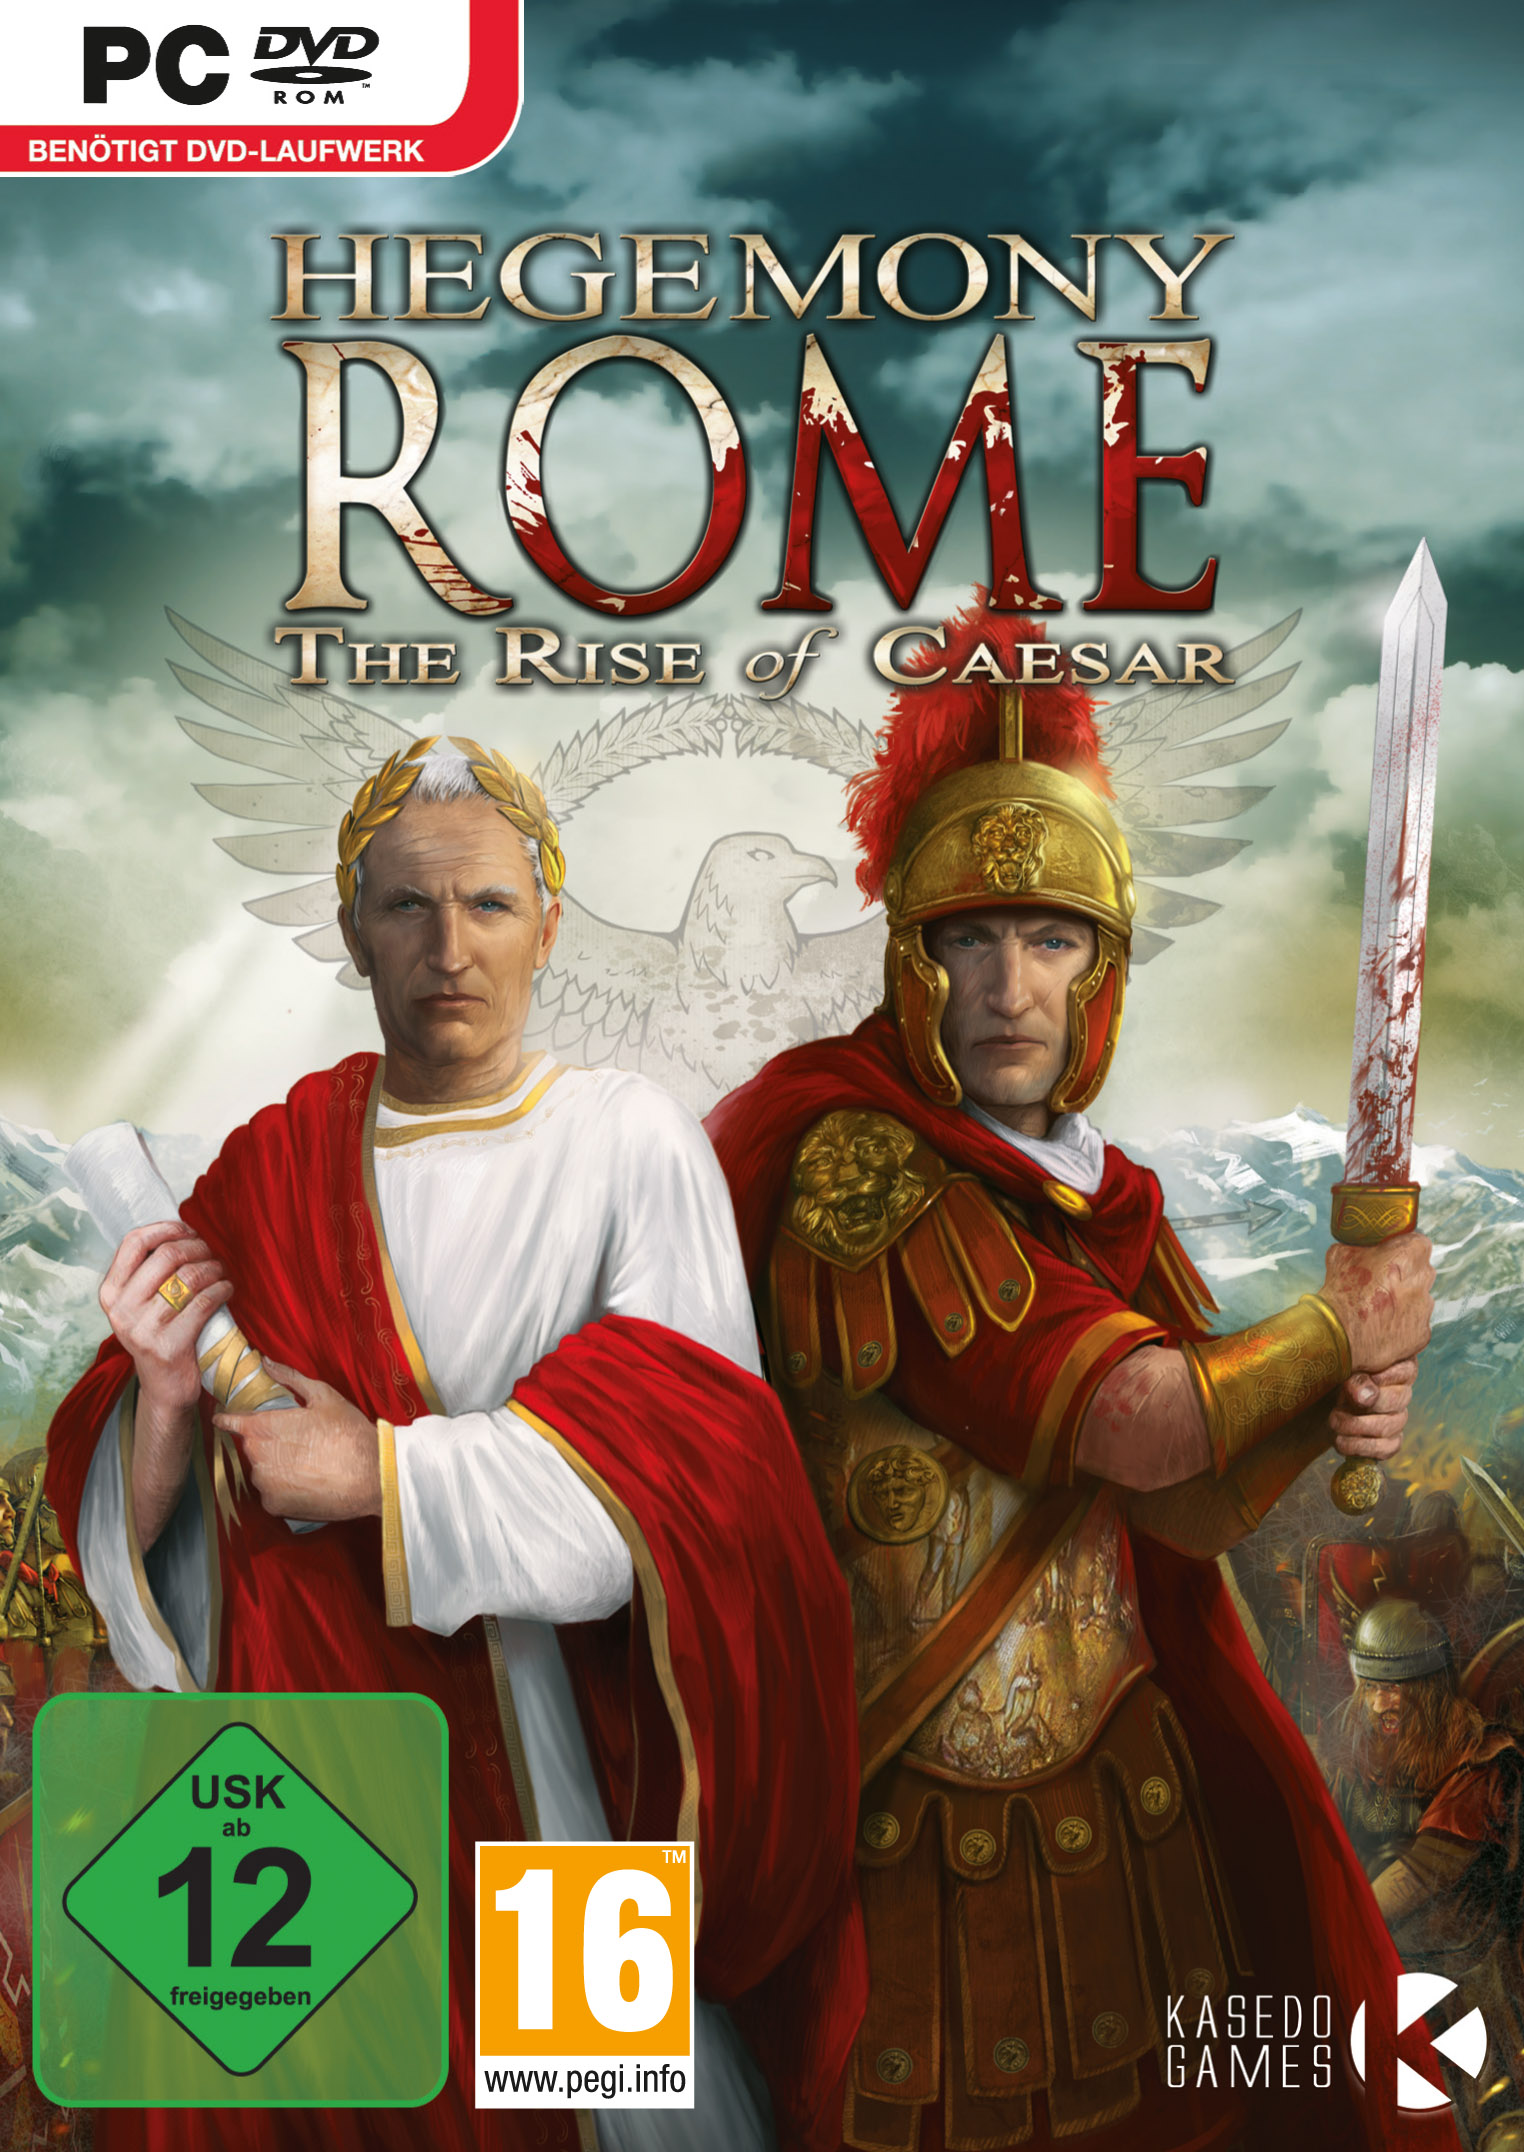 Hegemony Rome - The Rise of Caesar